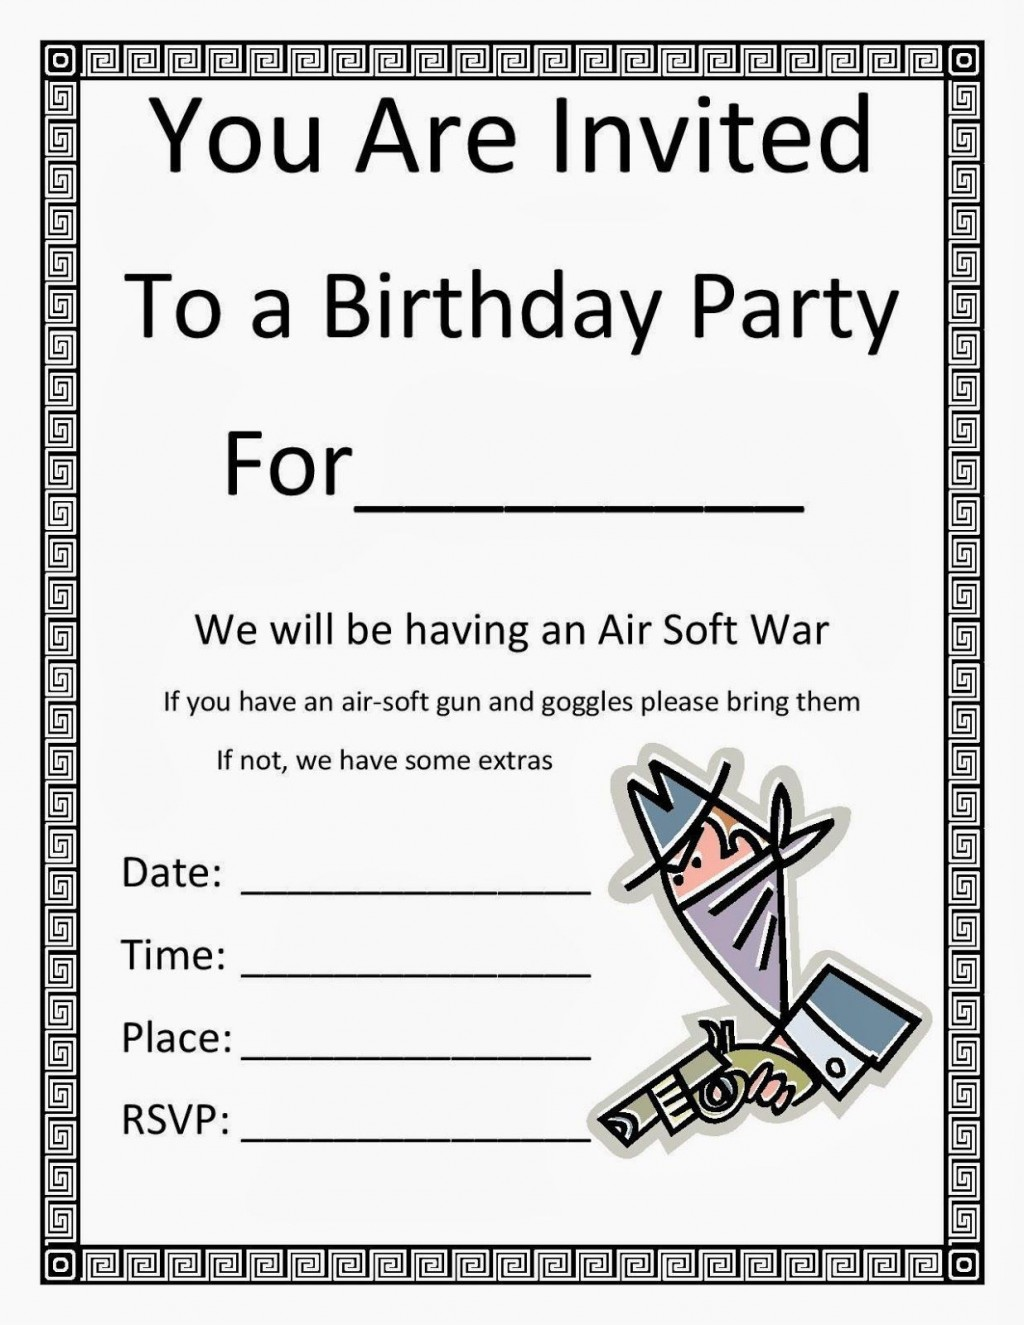 003 Exceptional Free Birthday Party Invitation Template For Word Sample Large